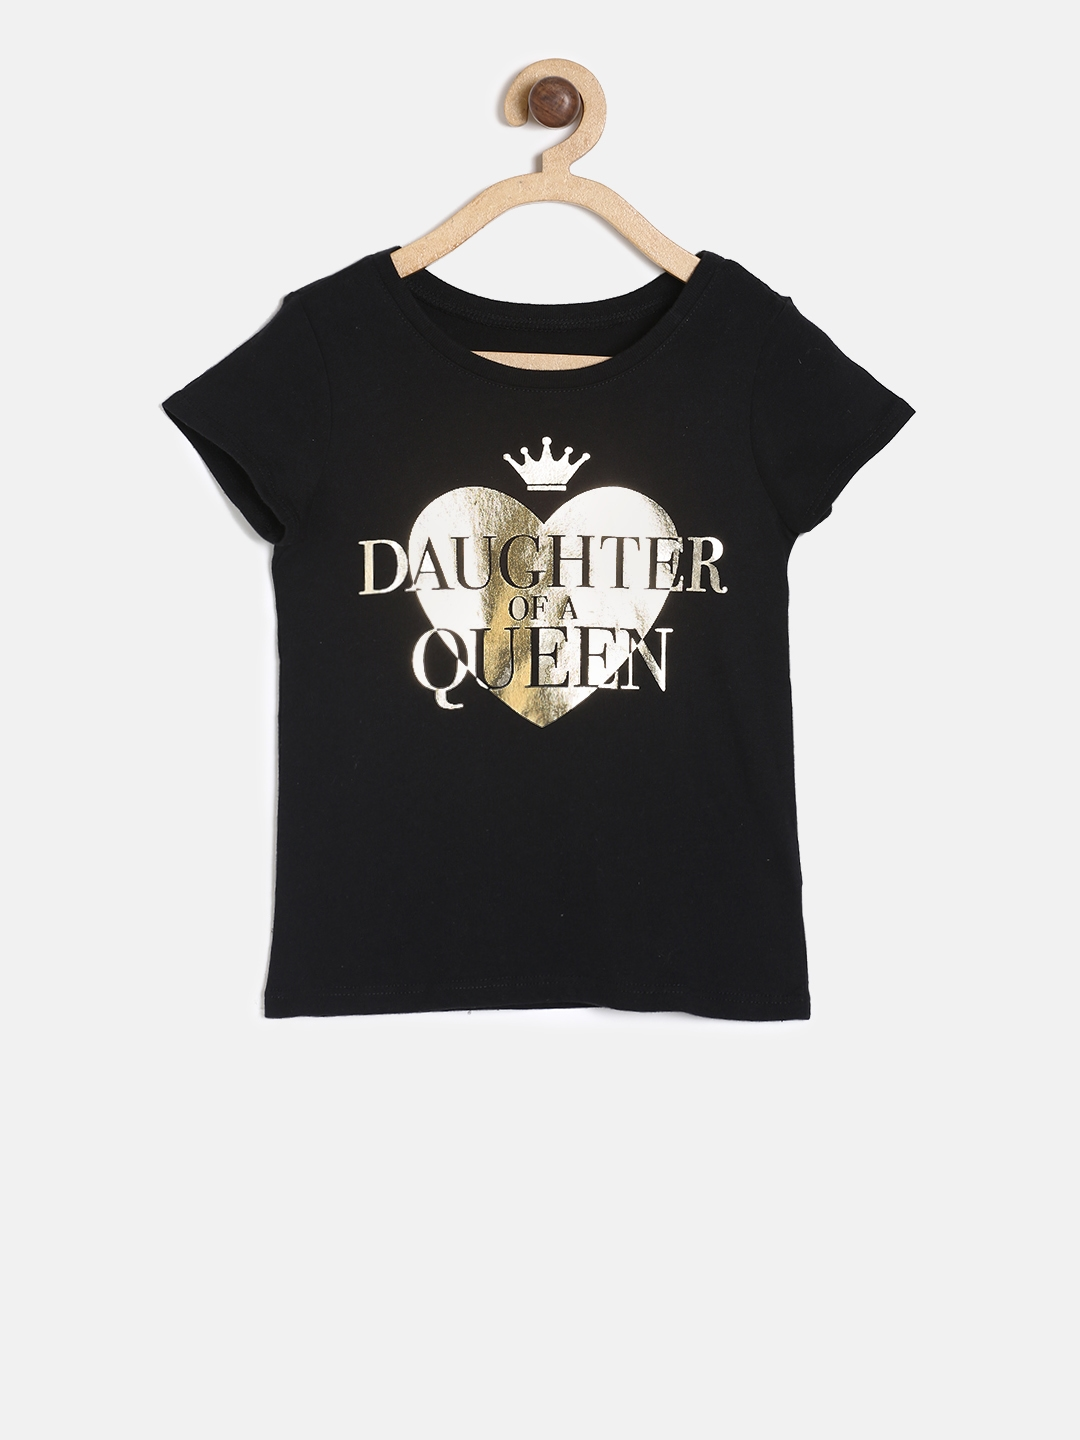 c2fe6e66 Buy The Childrens Place Girls Black Printed Round Neck T Shirt ...